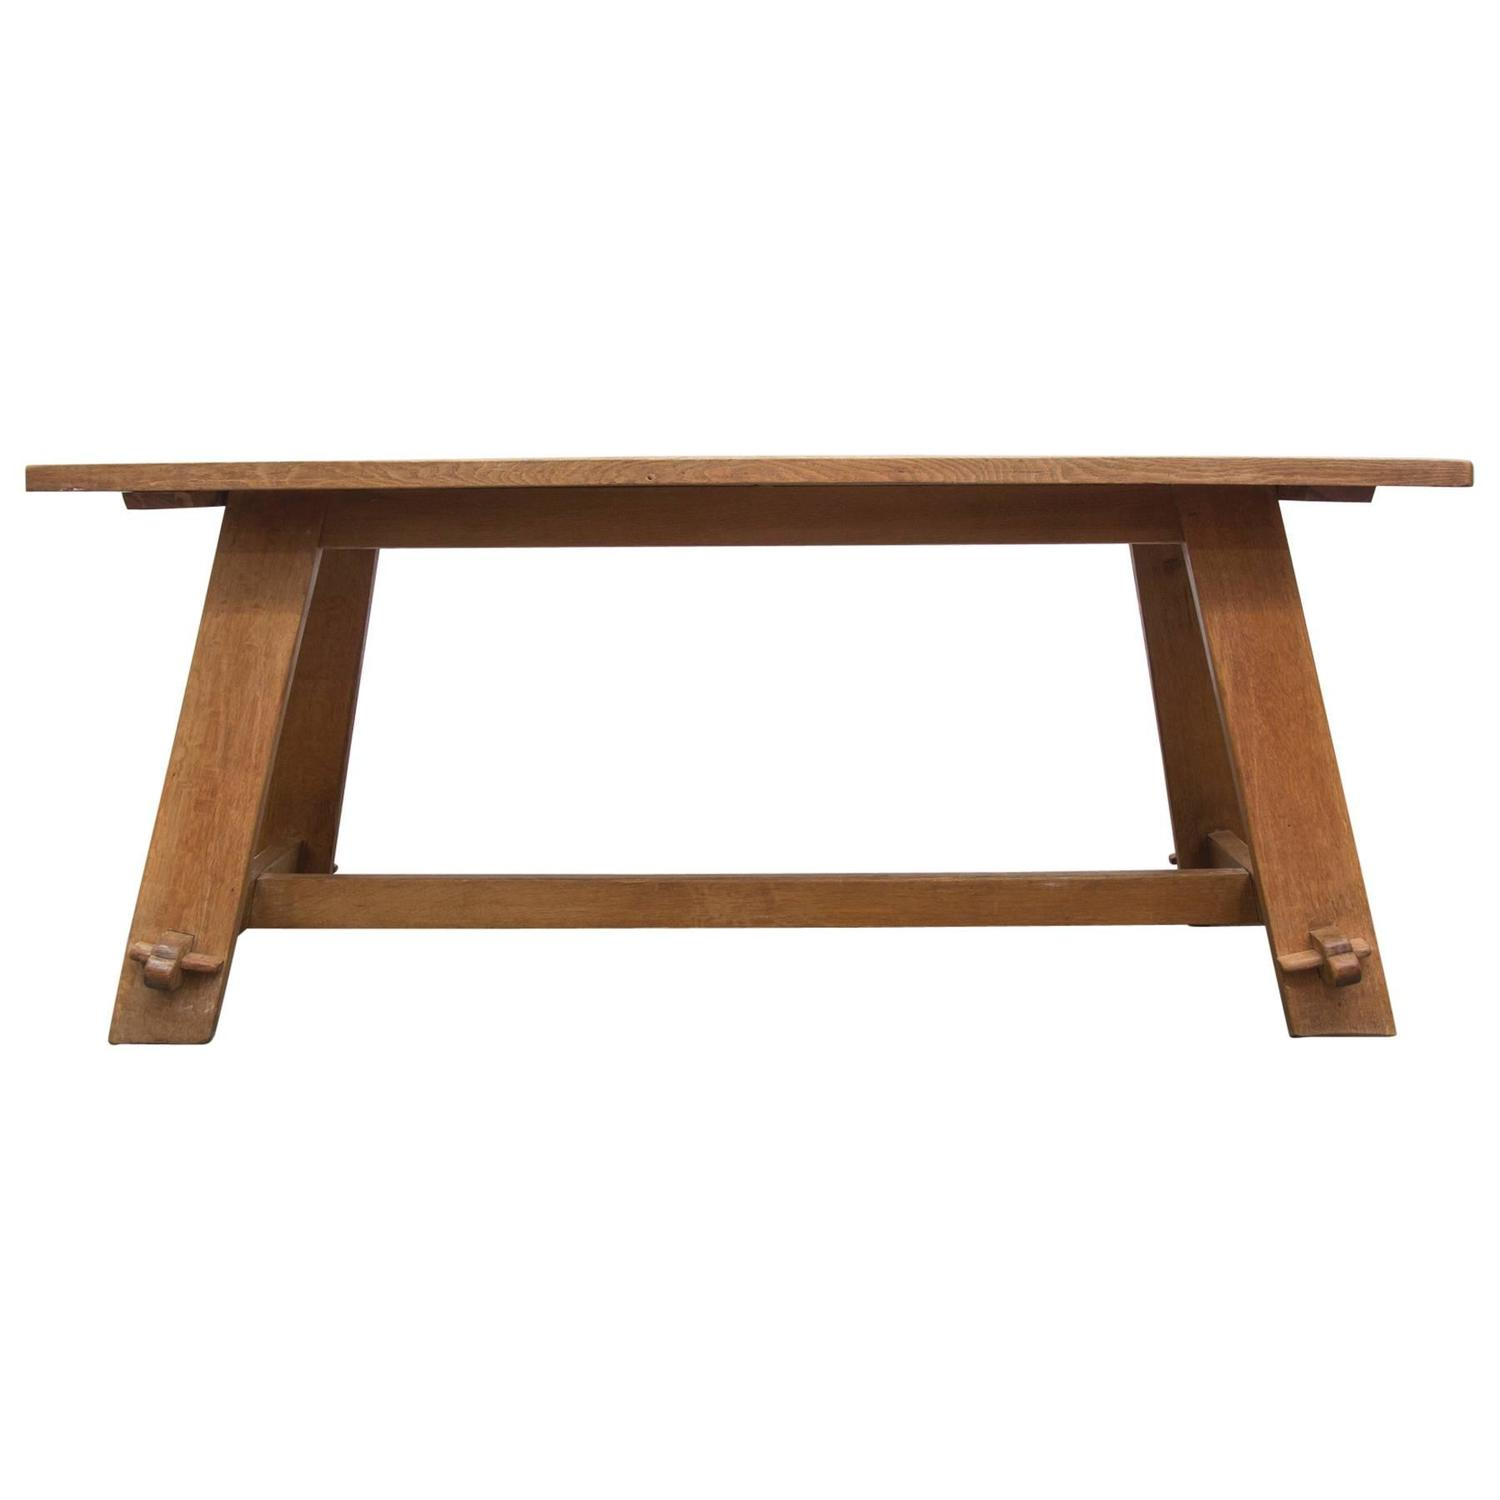 Solid oak trestle dining table at 1stdibs for Oak dining room table